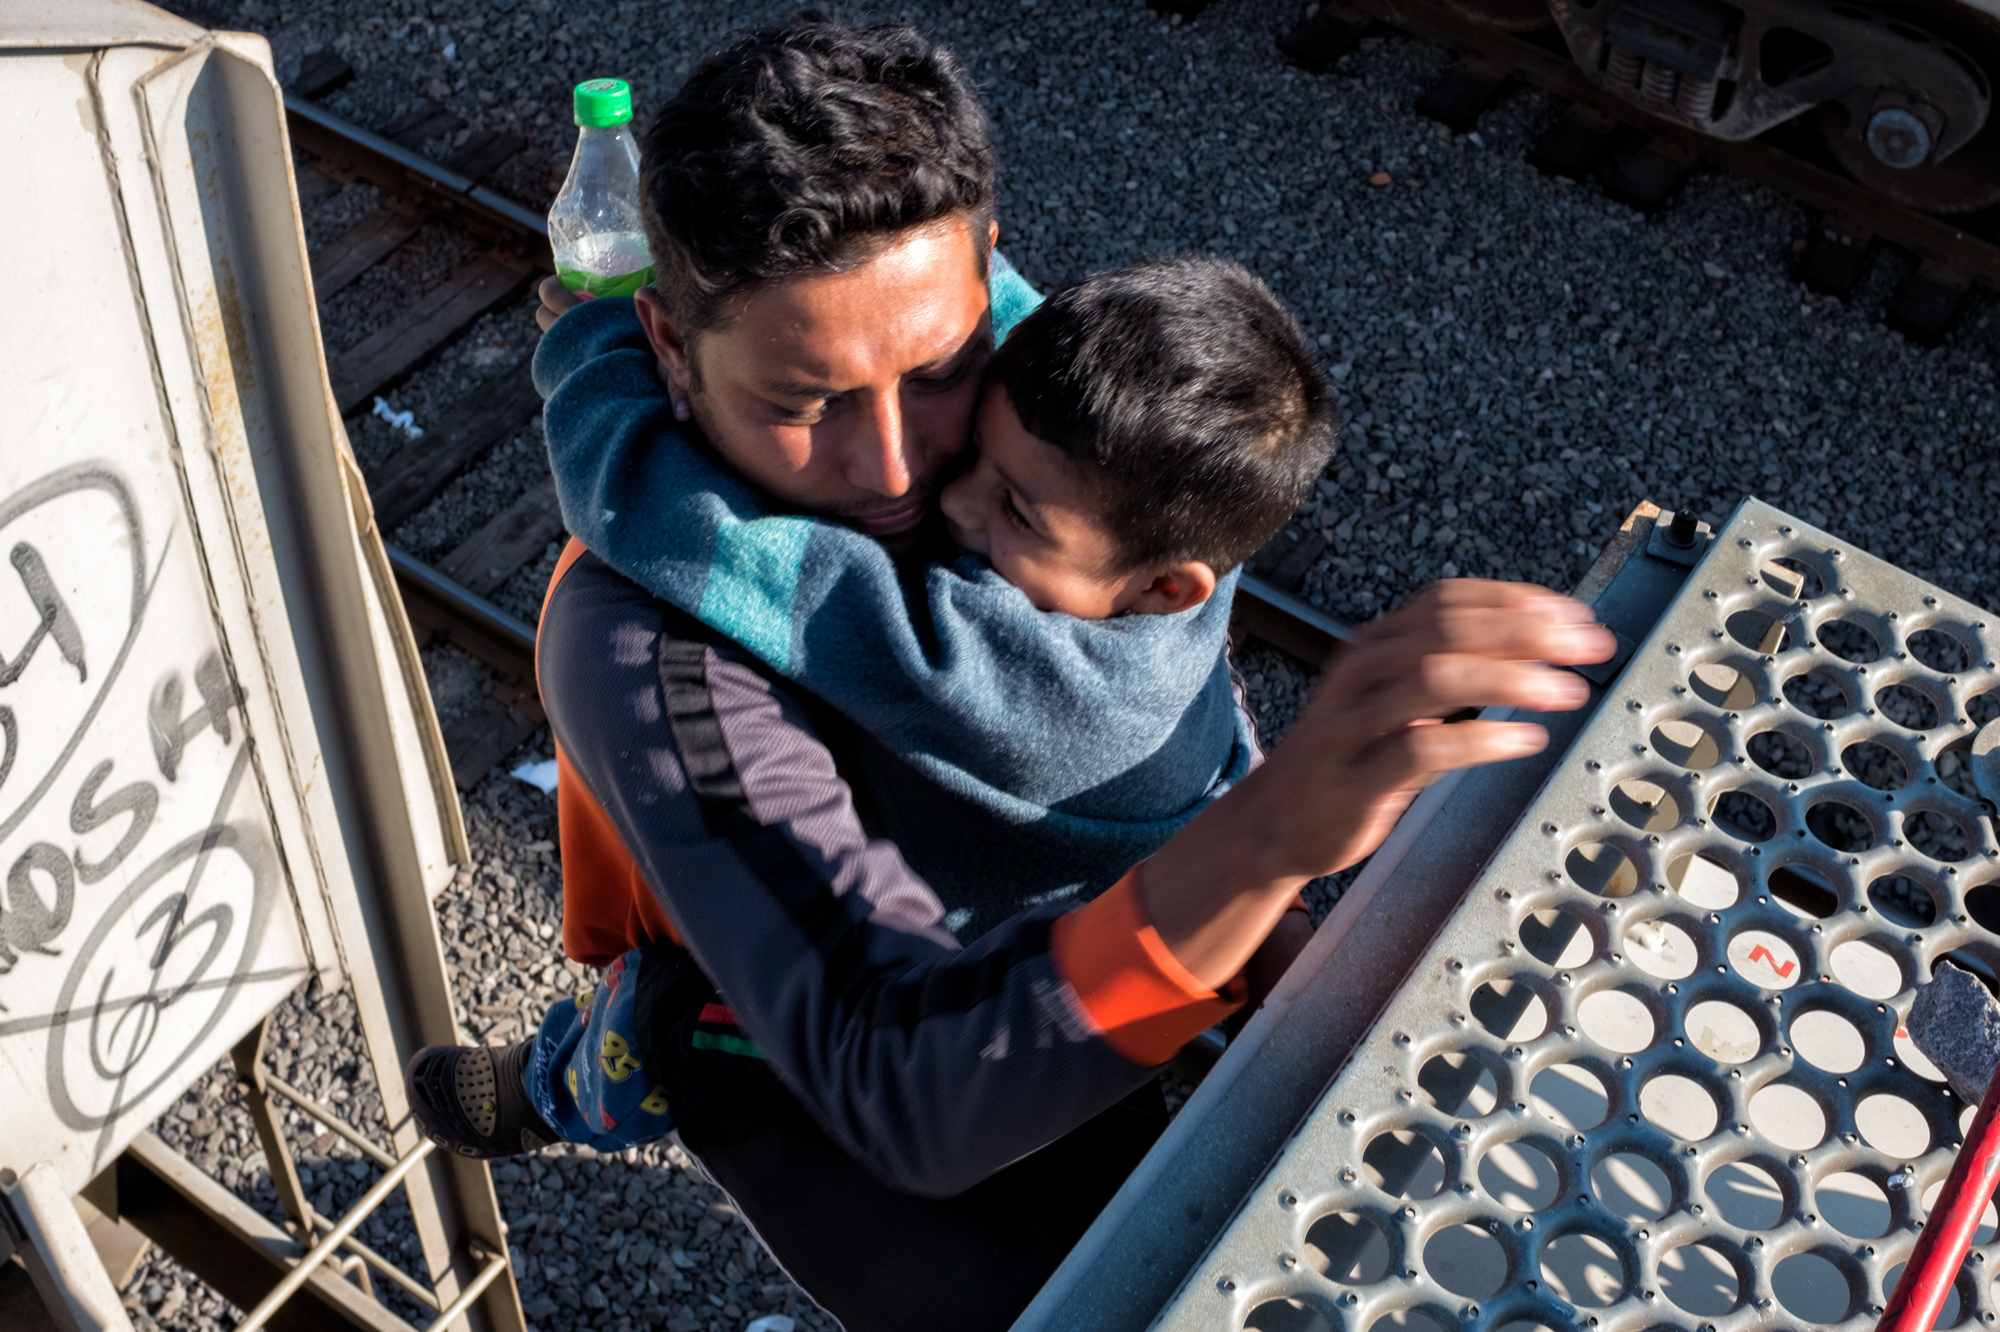 José gets off La Bestia with his son Andrée while the train stops on its way to Tijuana, Mexico, Oct. 22, 2017.